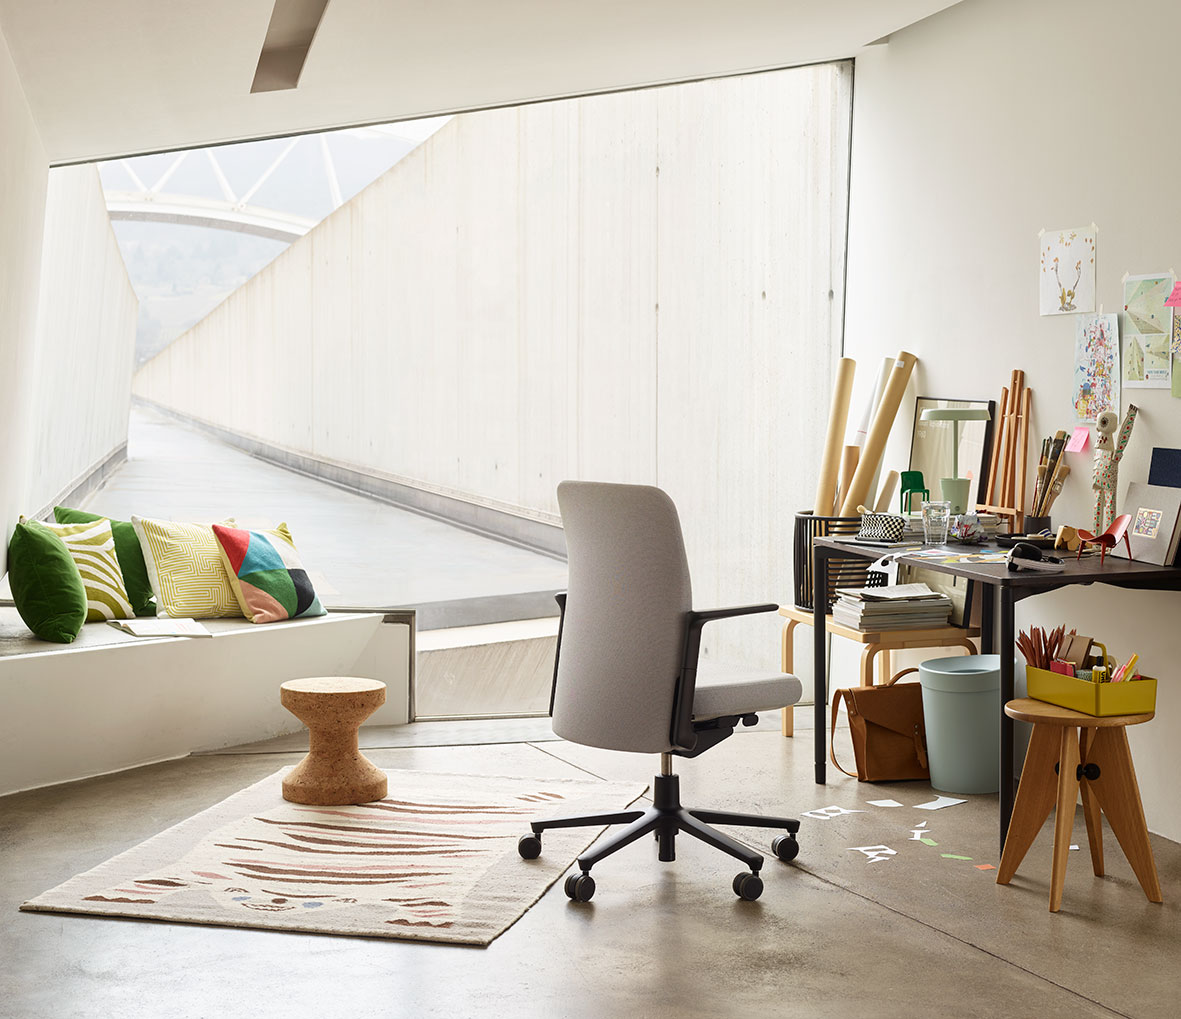 [21. Vitra Belleville by Ronan & Erwan BouroullecVitrapoint